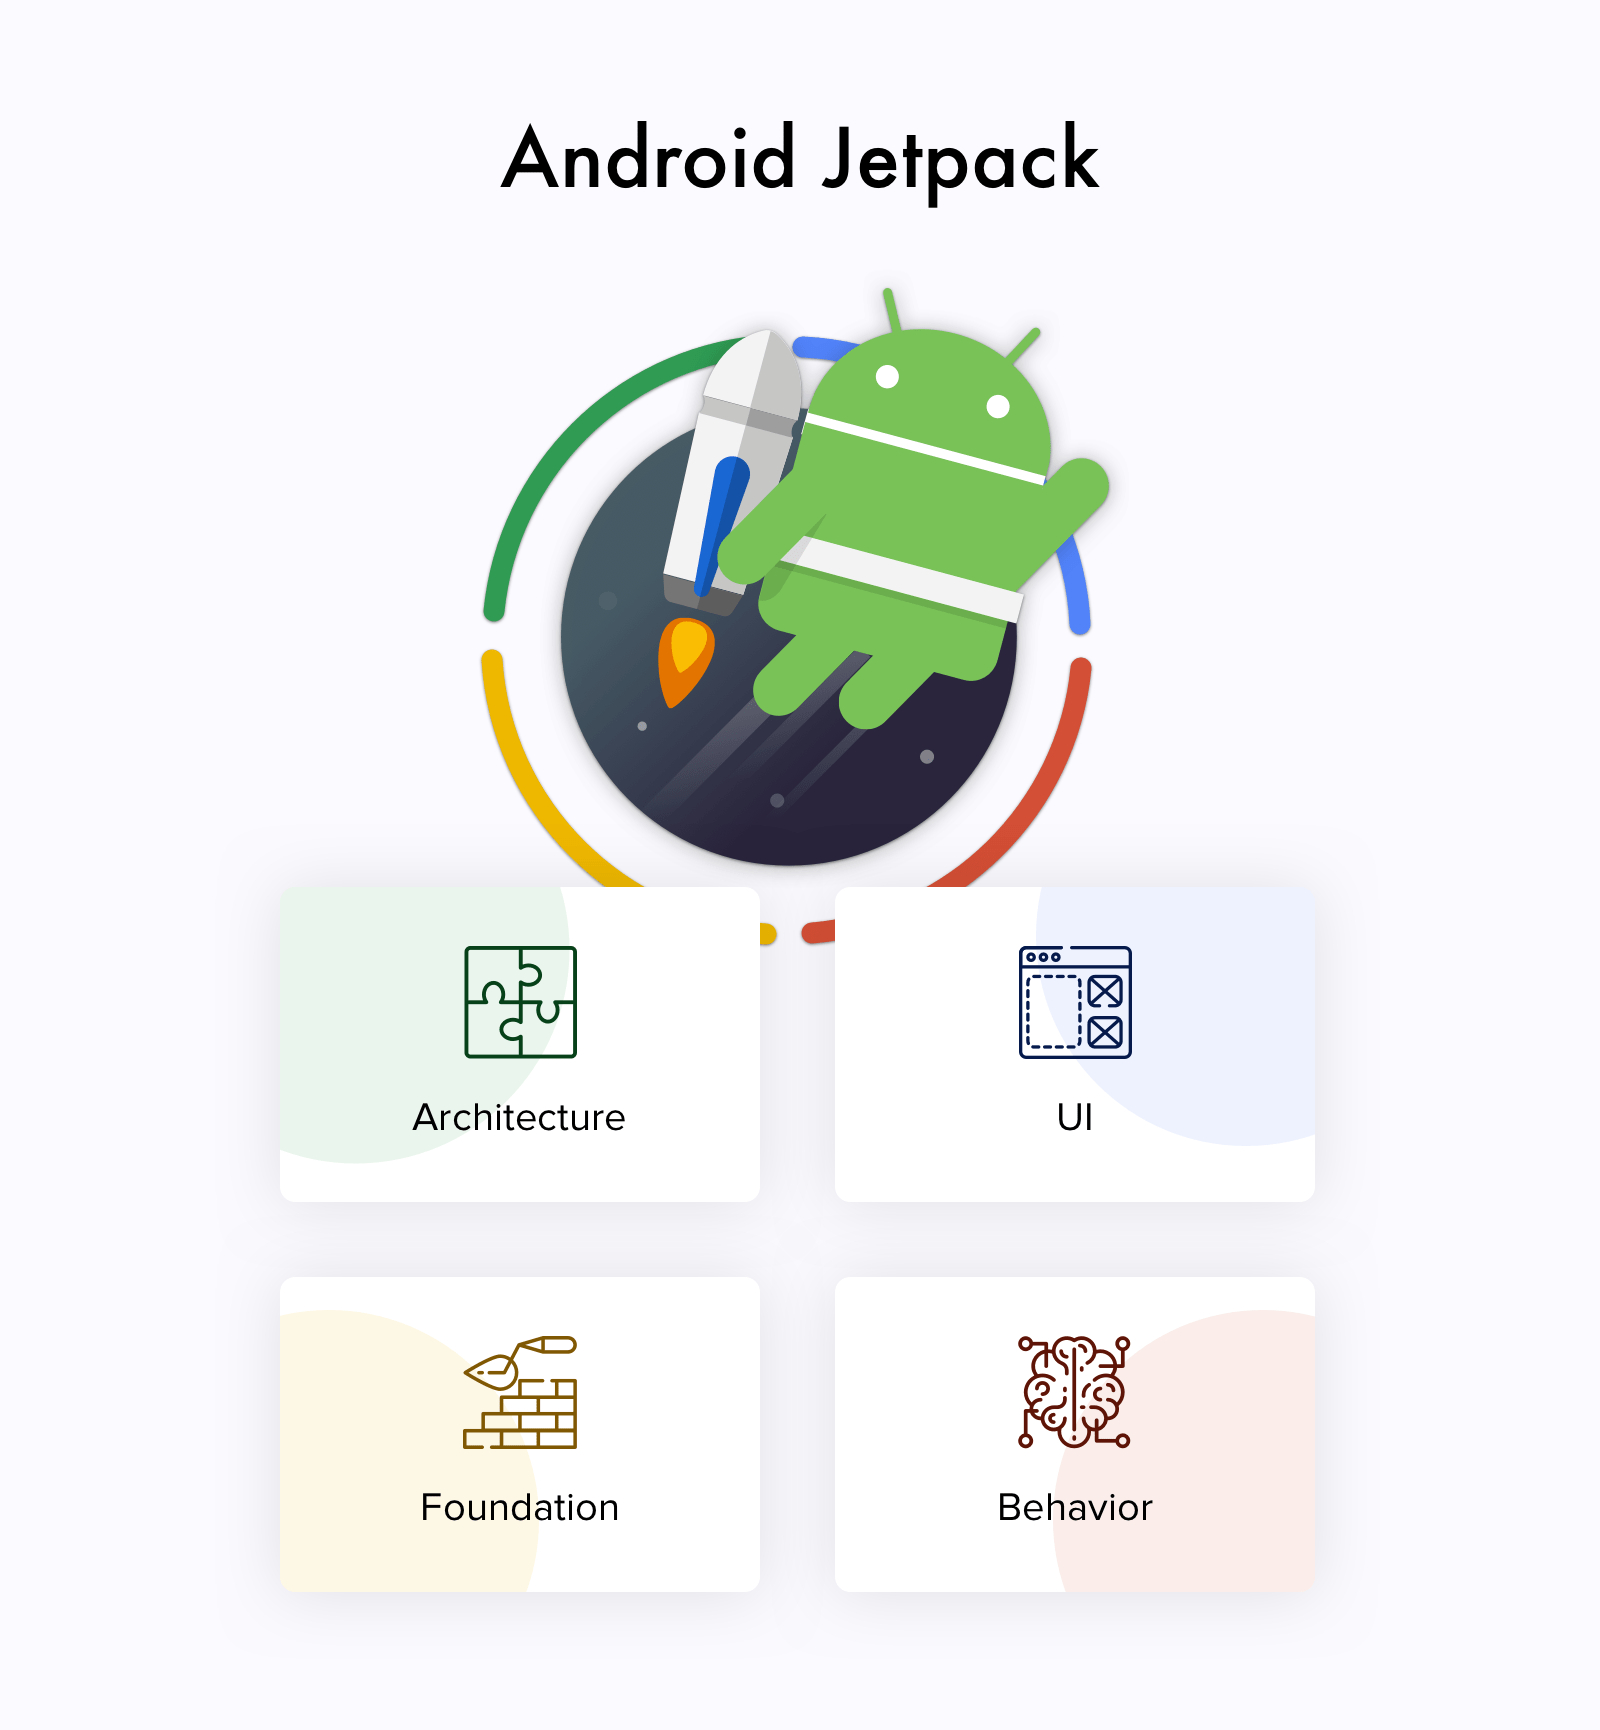 The components of Android Jetpack